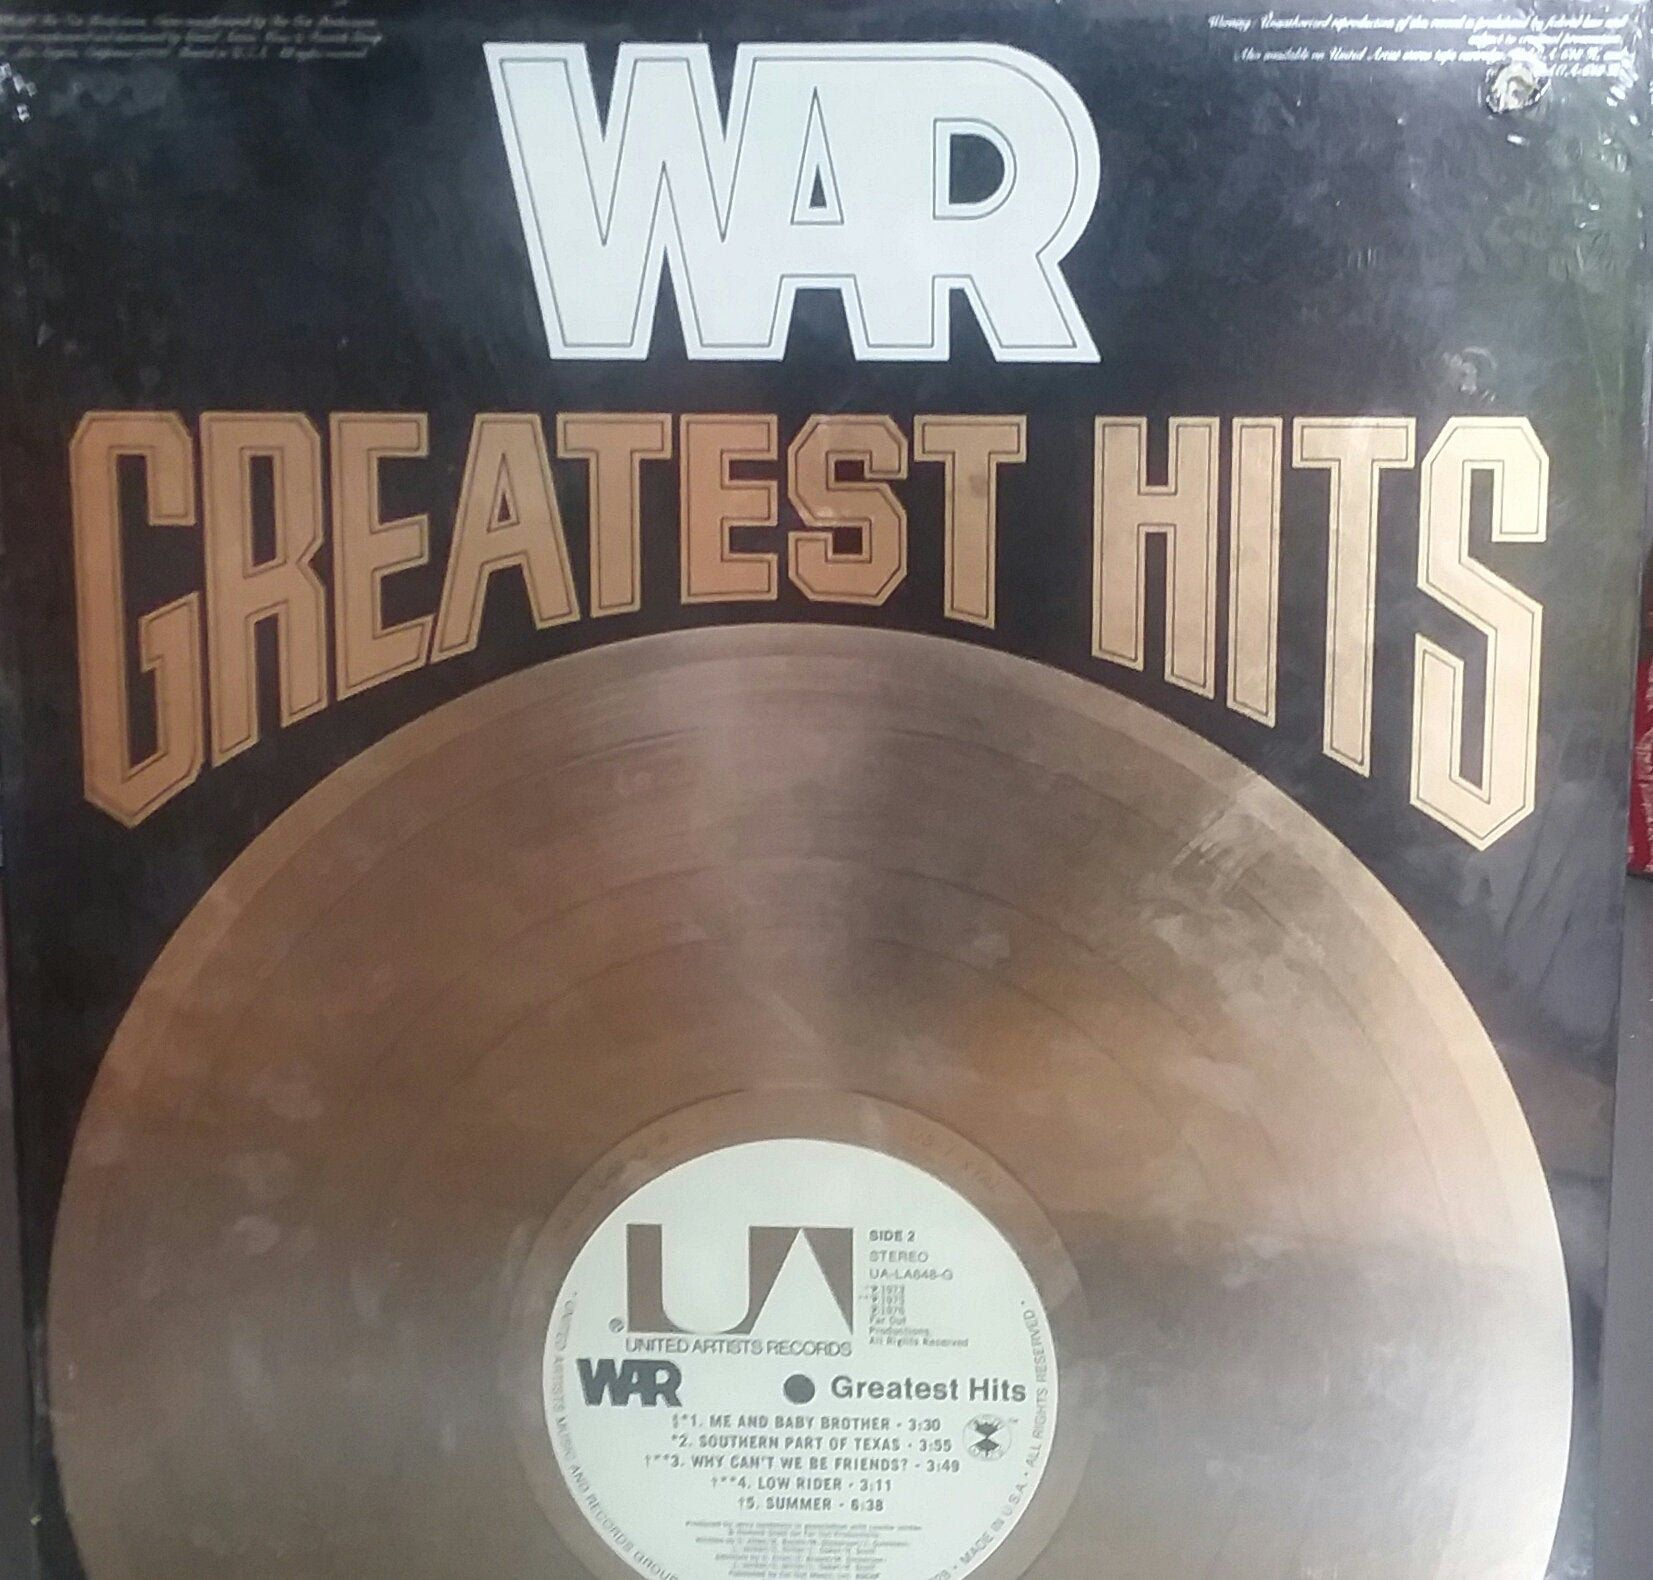 War Greatest Hits Vintage Record Album Vinyl Lp Classic Funk